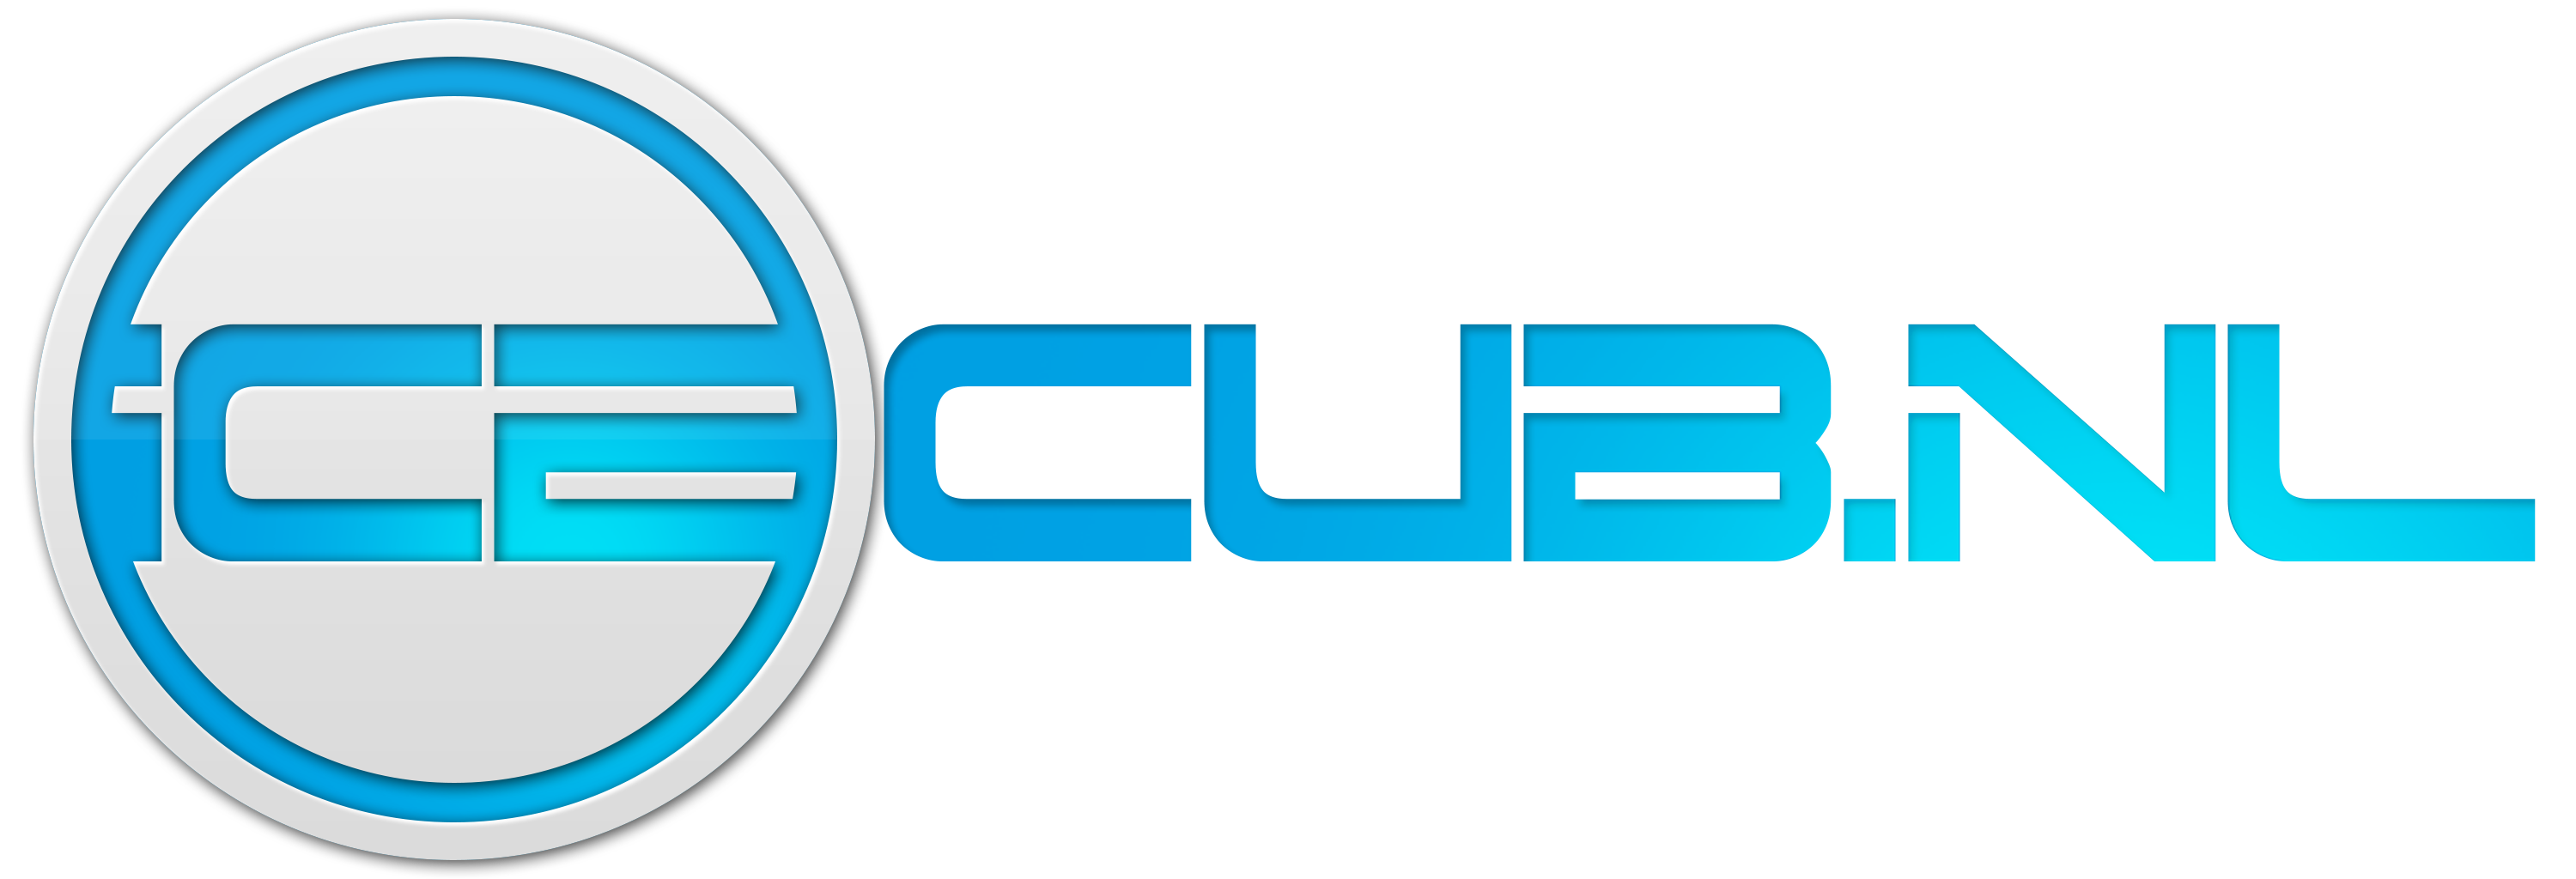 Icecub Chat Logo